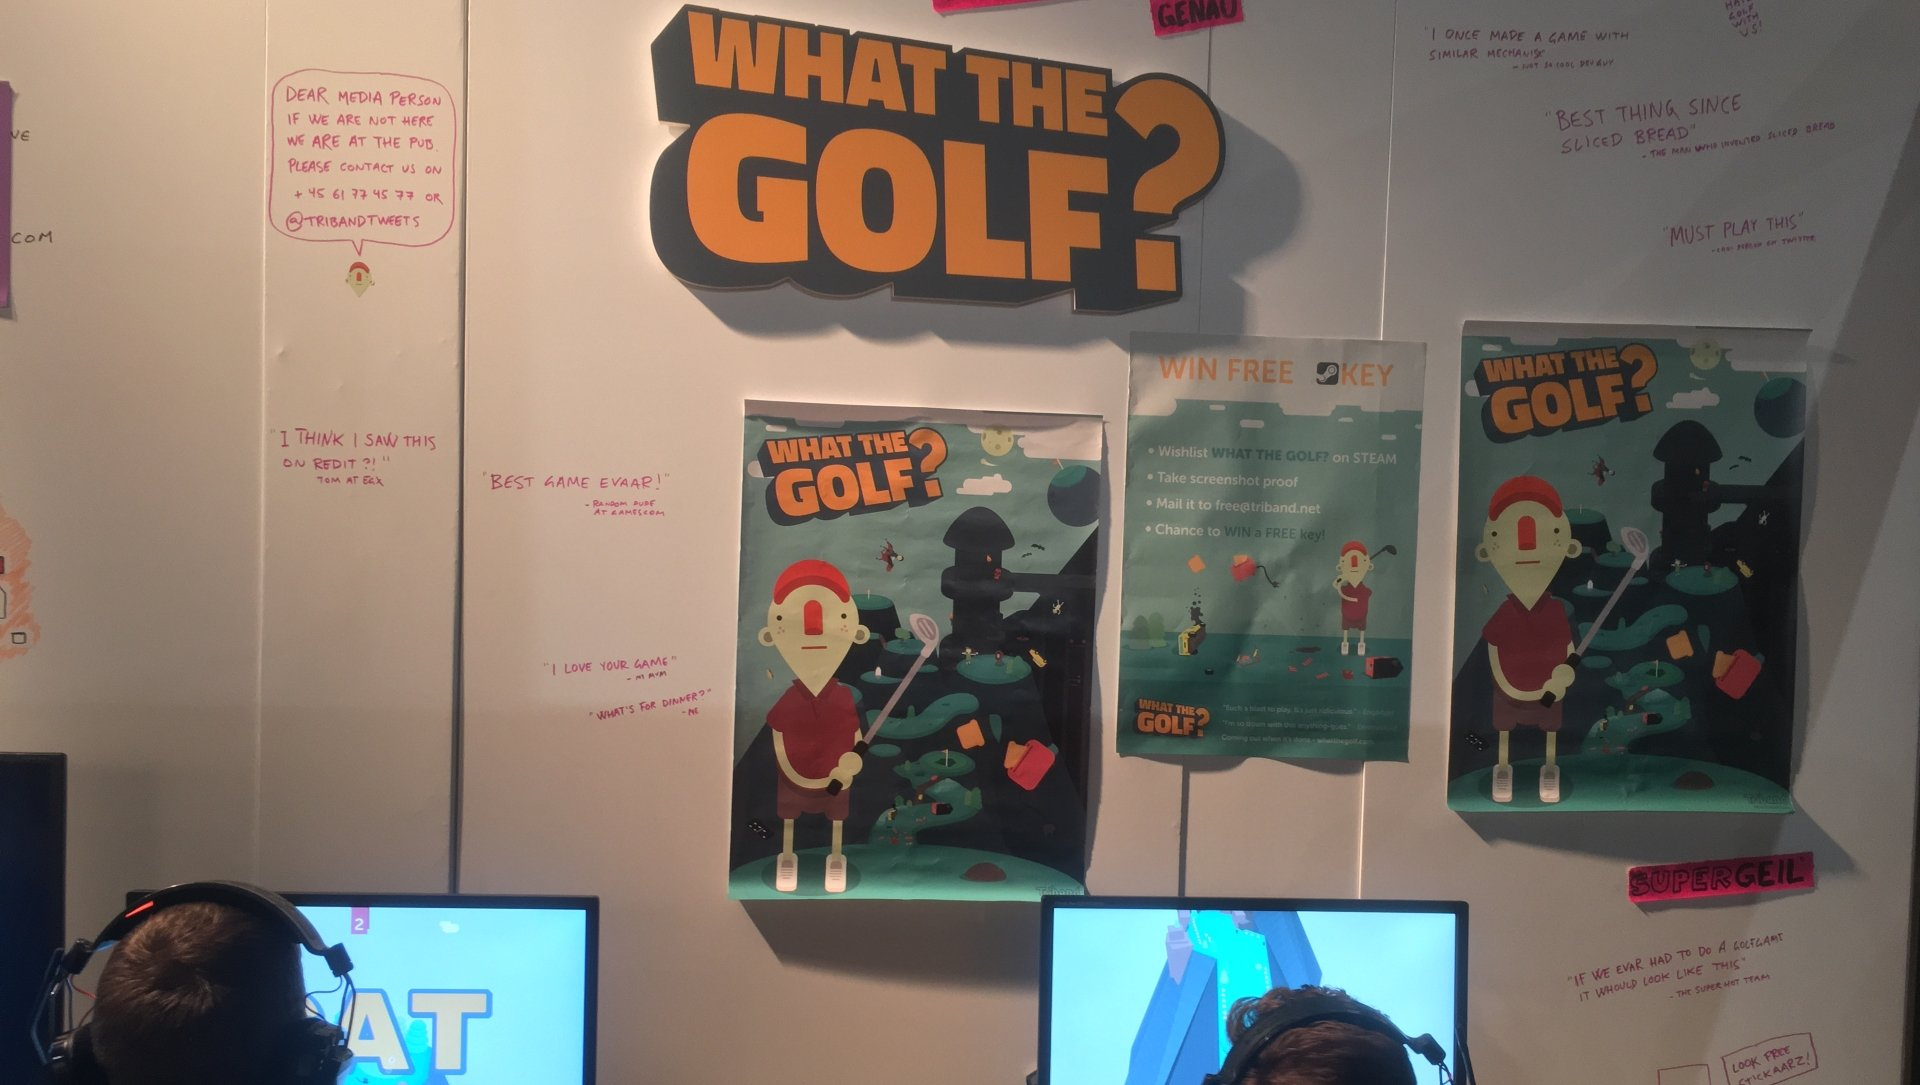 What the Golf? proved particularly popular.